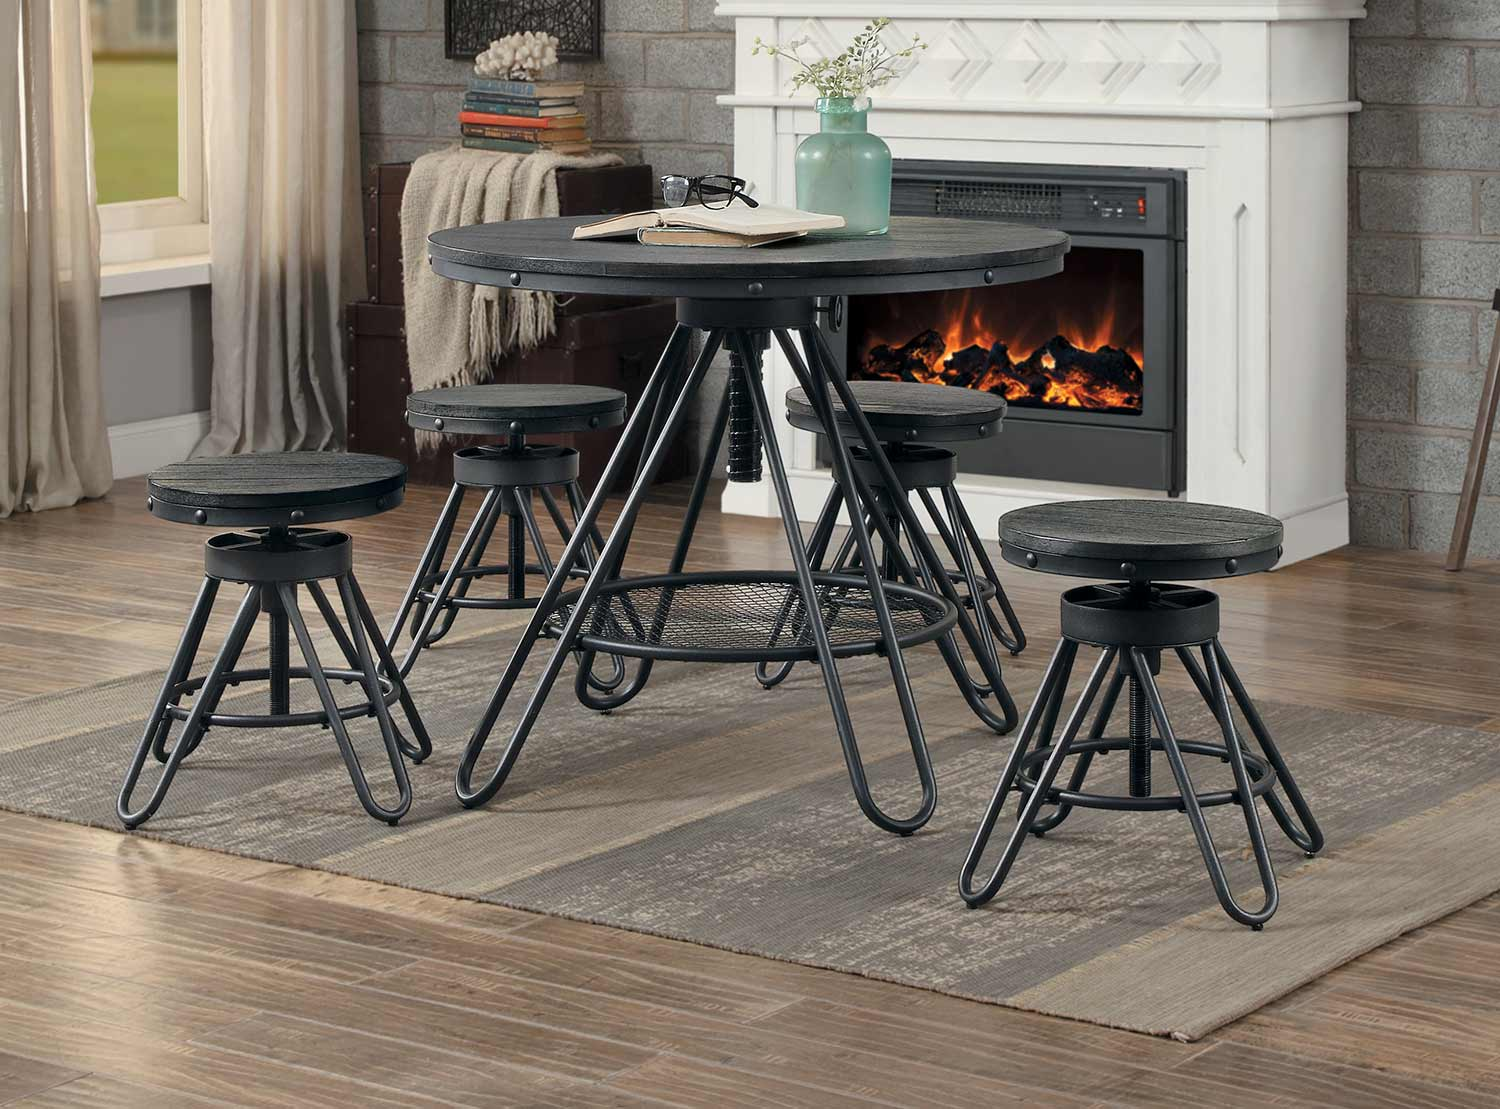 Homelegance Cirrus Adjustable Round Dining Set - Weathered Gray